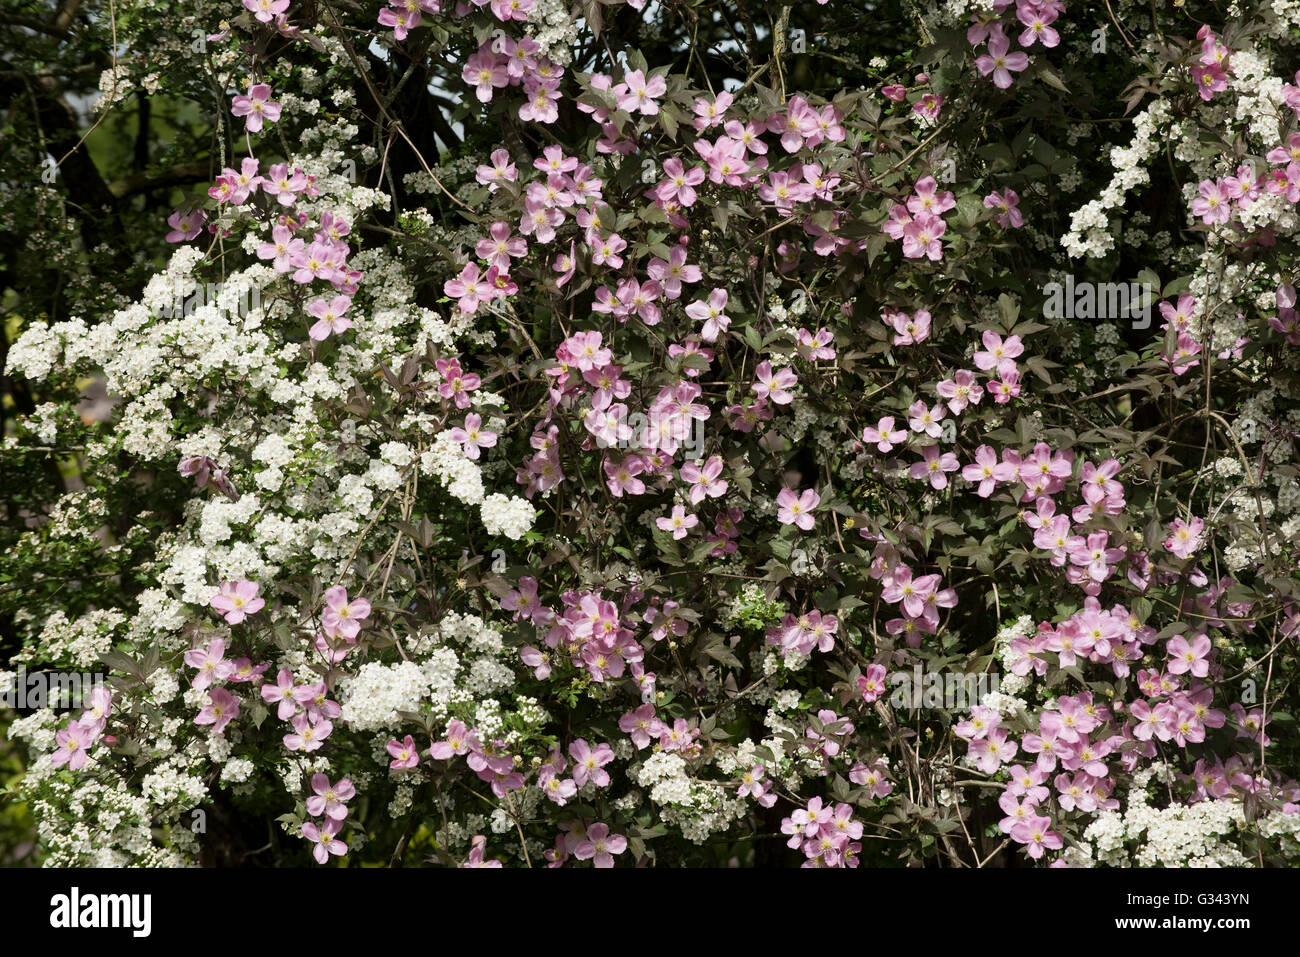 Clematis montana var rubens 'Terarose' flowers intertwined with may blossom on a hawthorn tree, May - Stock Image